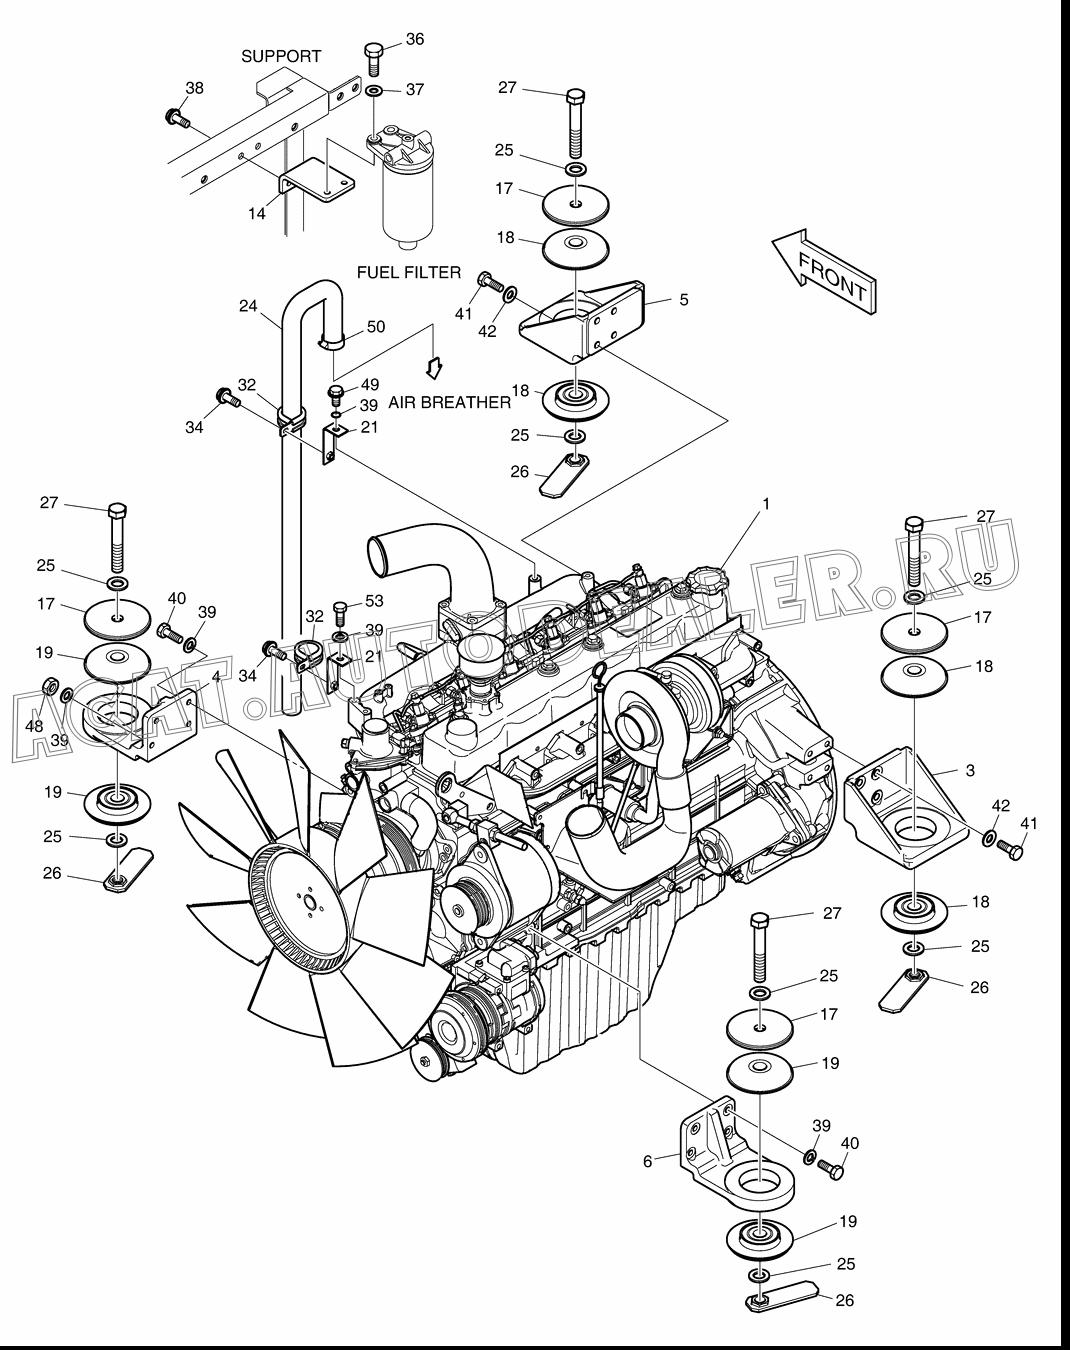 ENGINE-DB58TI K1000967A для Doosan DX225LCA